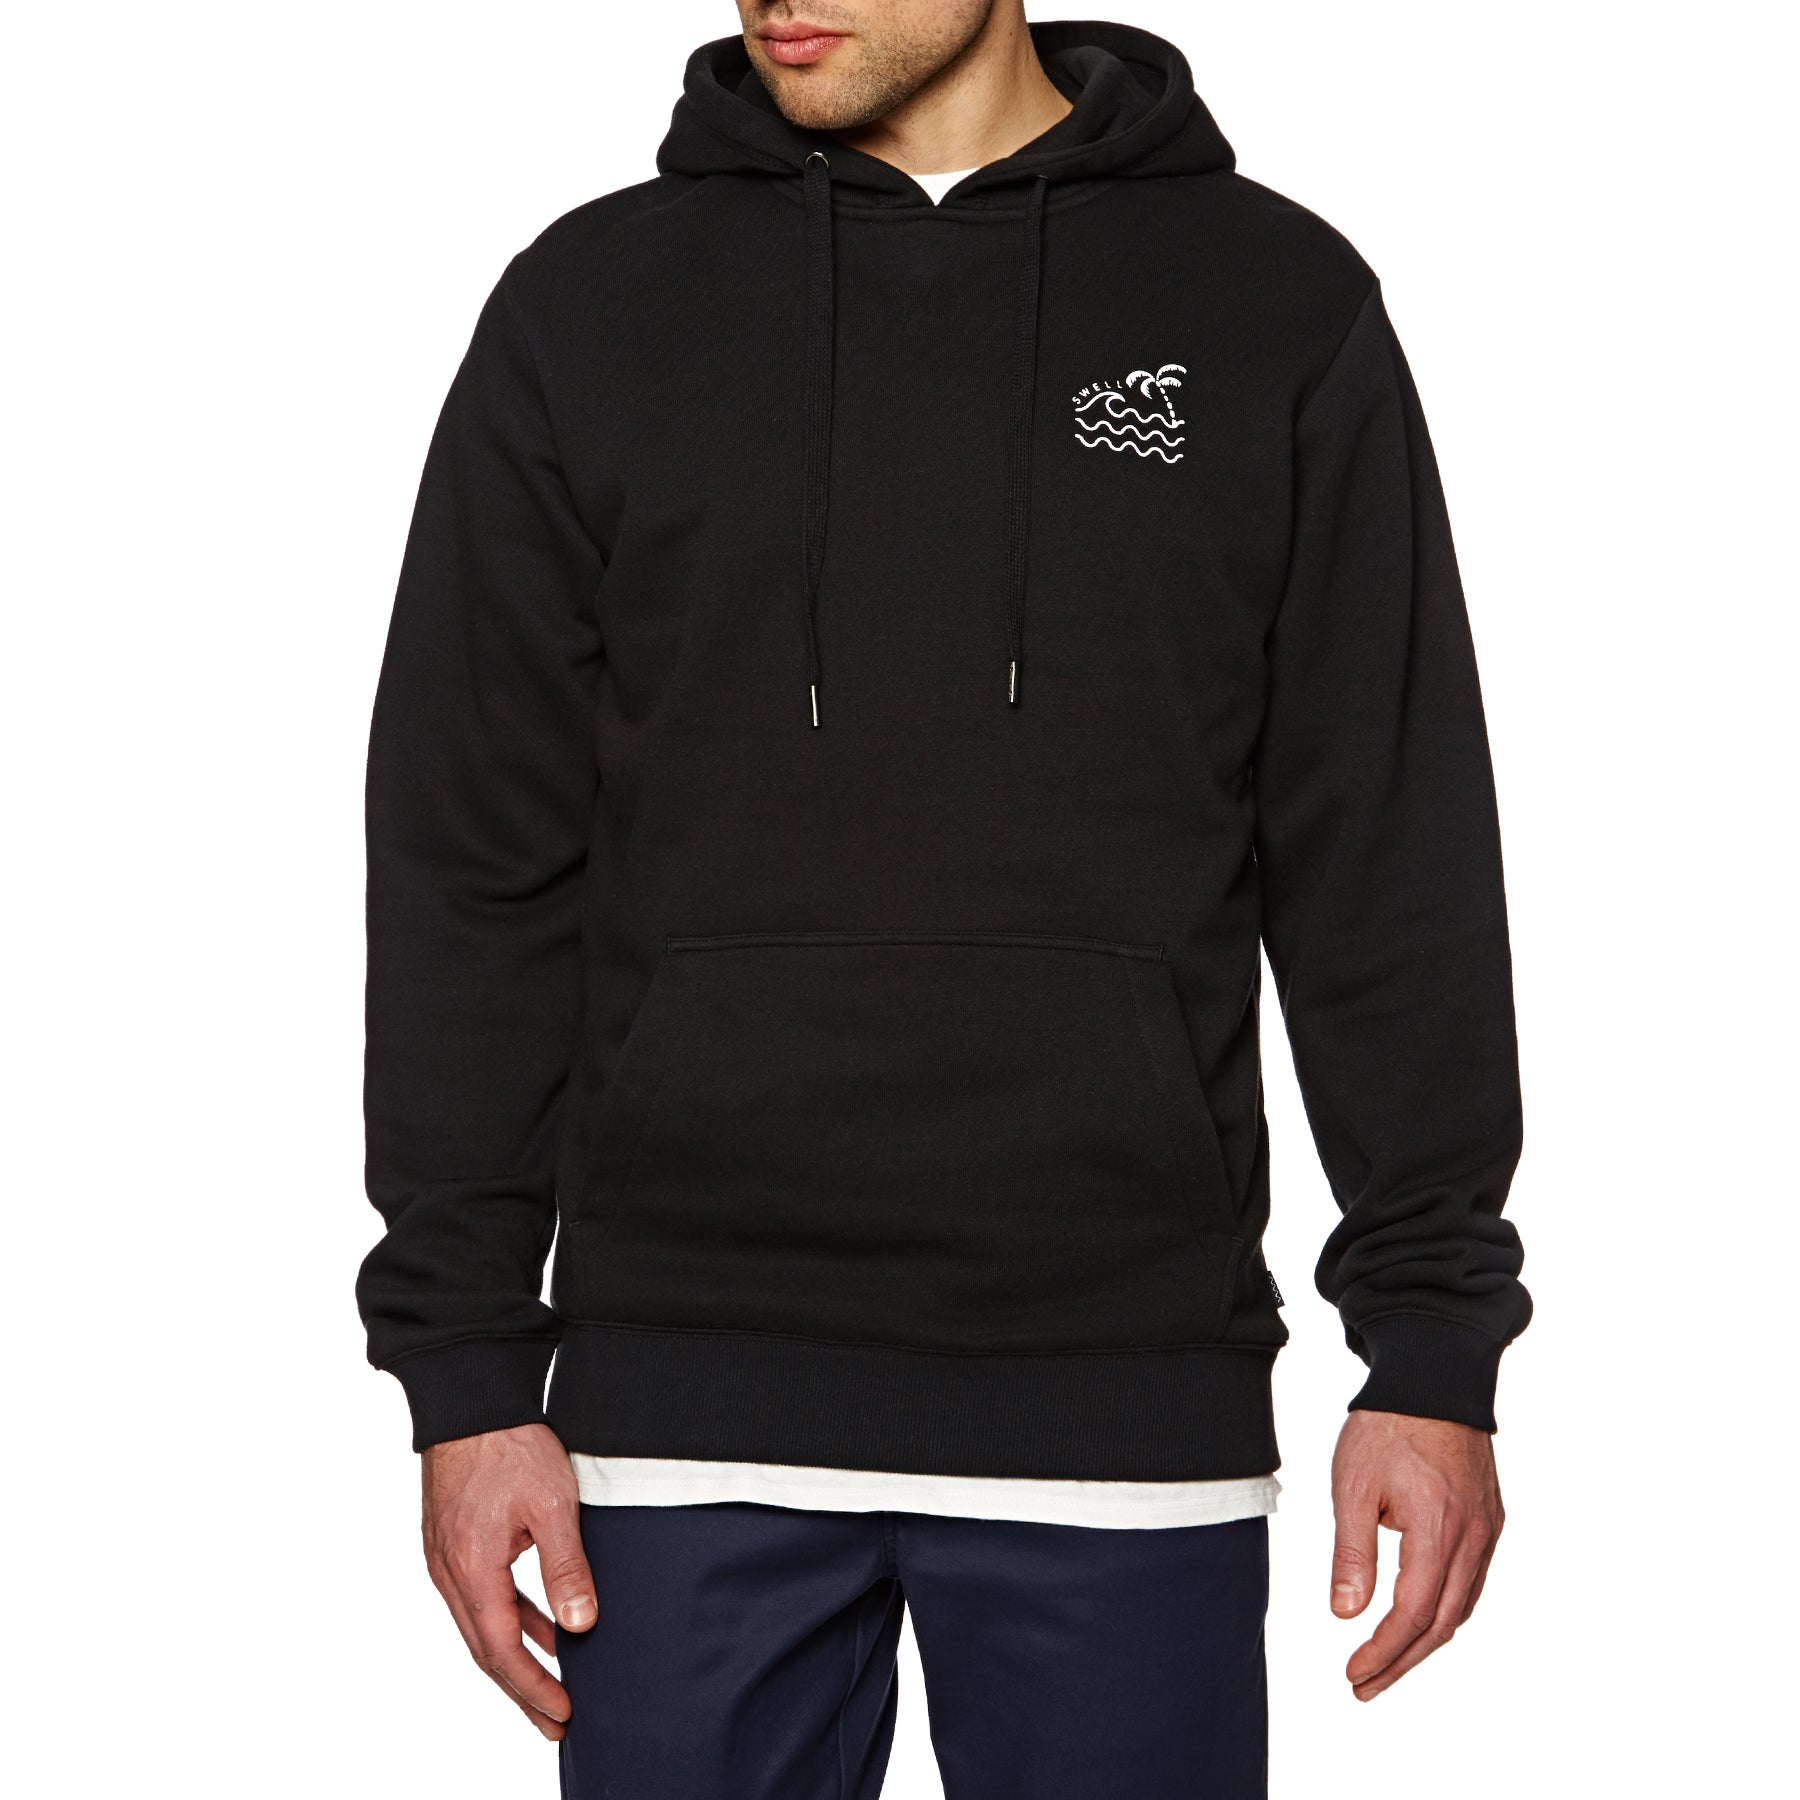 SWELL Islands Pullover Hoody - Black